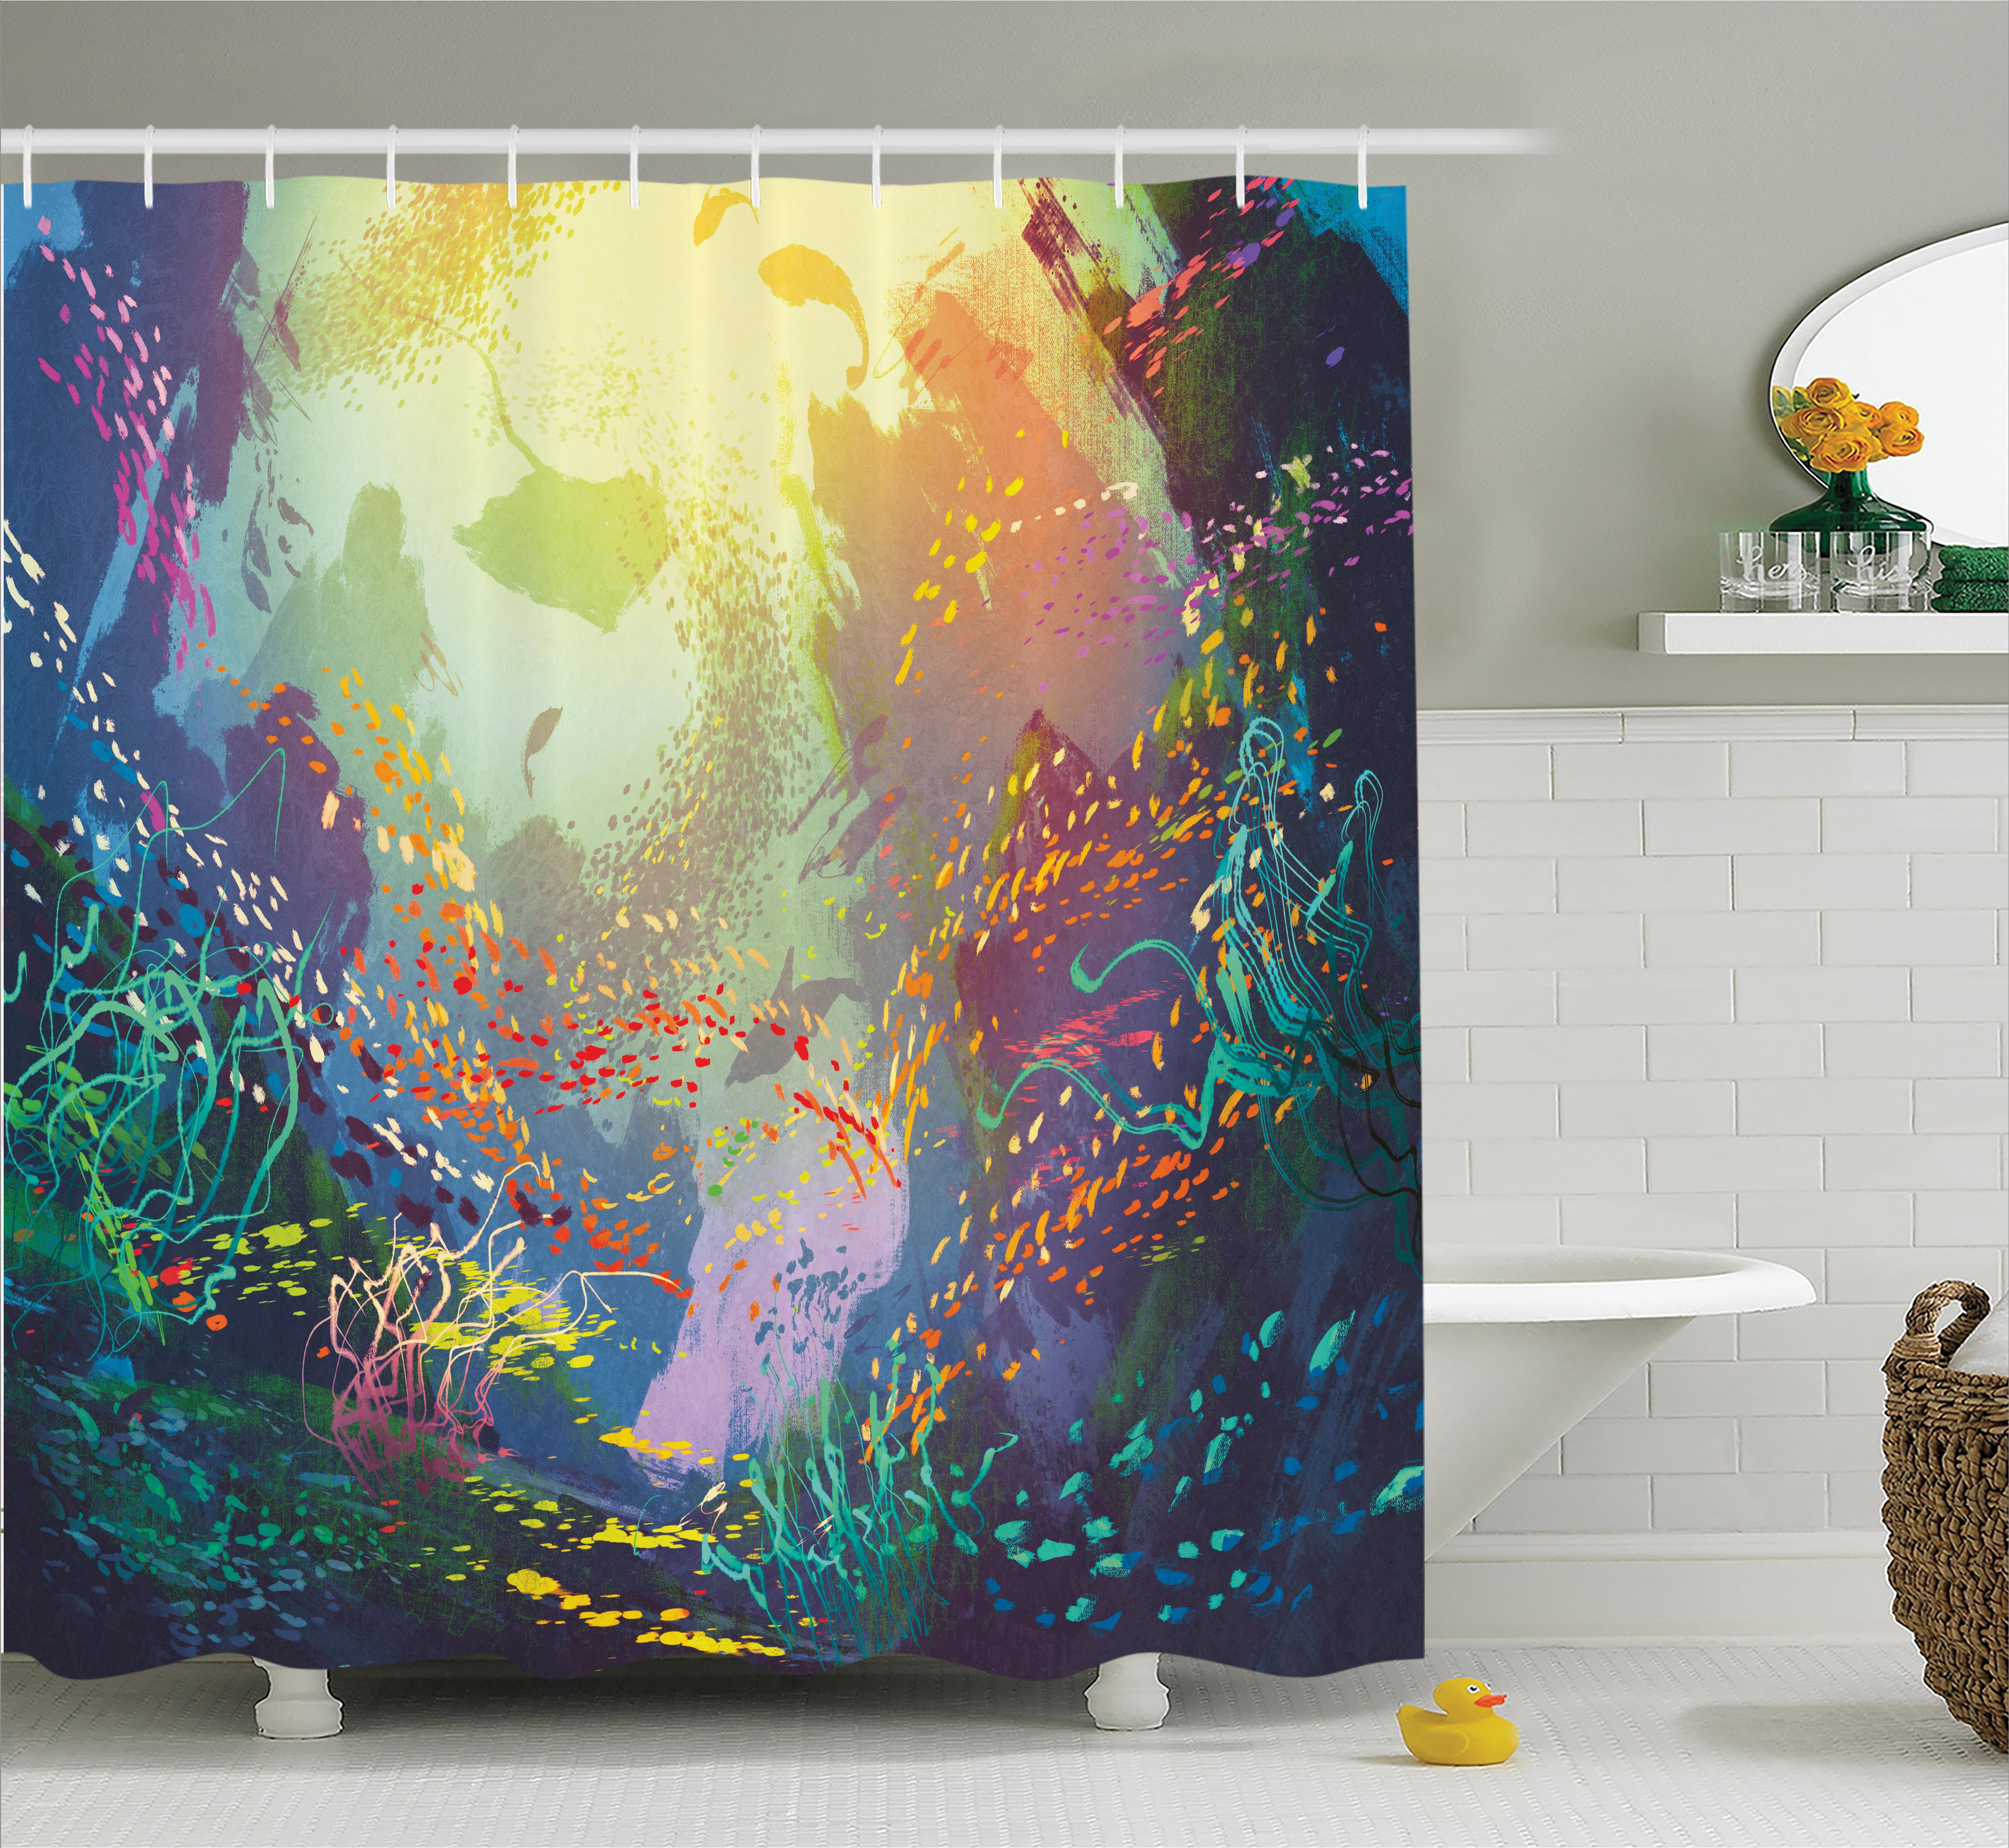 Underwater Fish Shower Curtain Set, Underwater with Coral Reef and Colorful Fish Aquarium Artistic Home Art, Bathroom Decor, Turquoise Yellow Pink, by Ambesonne